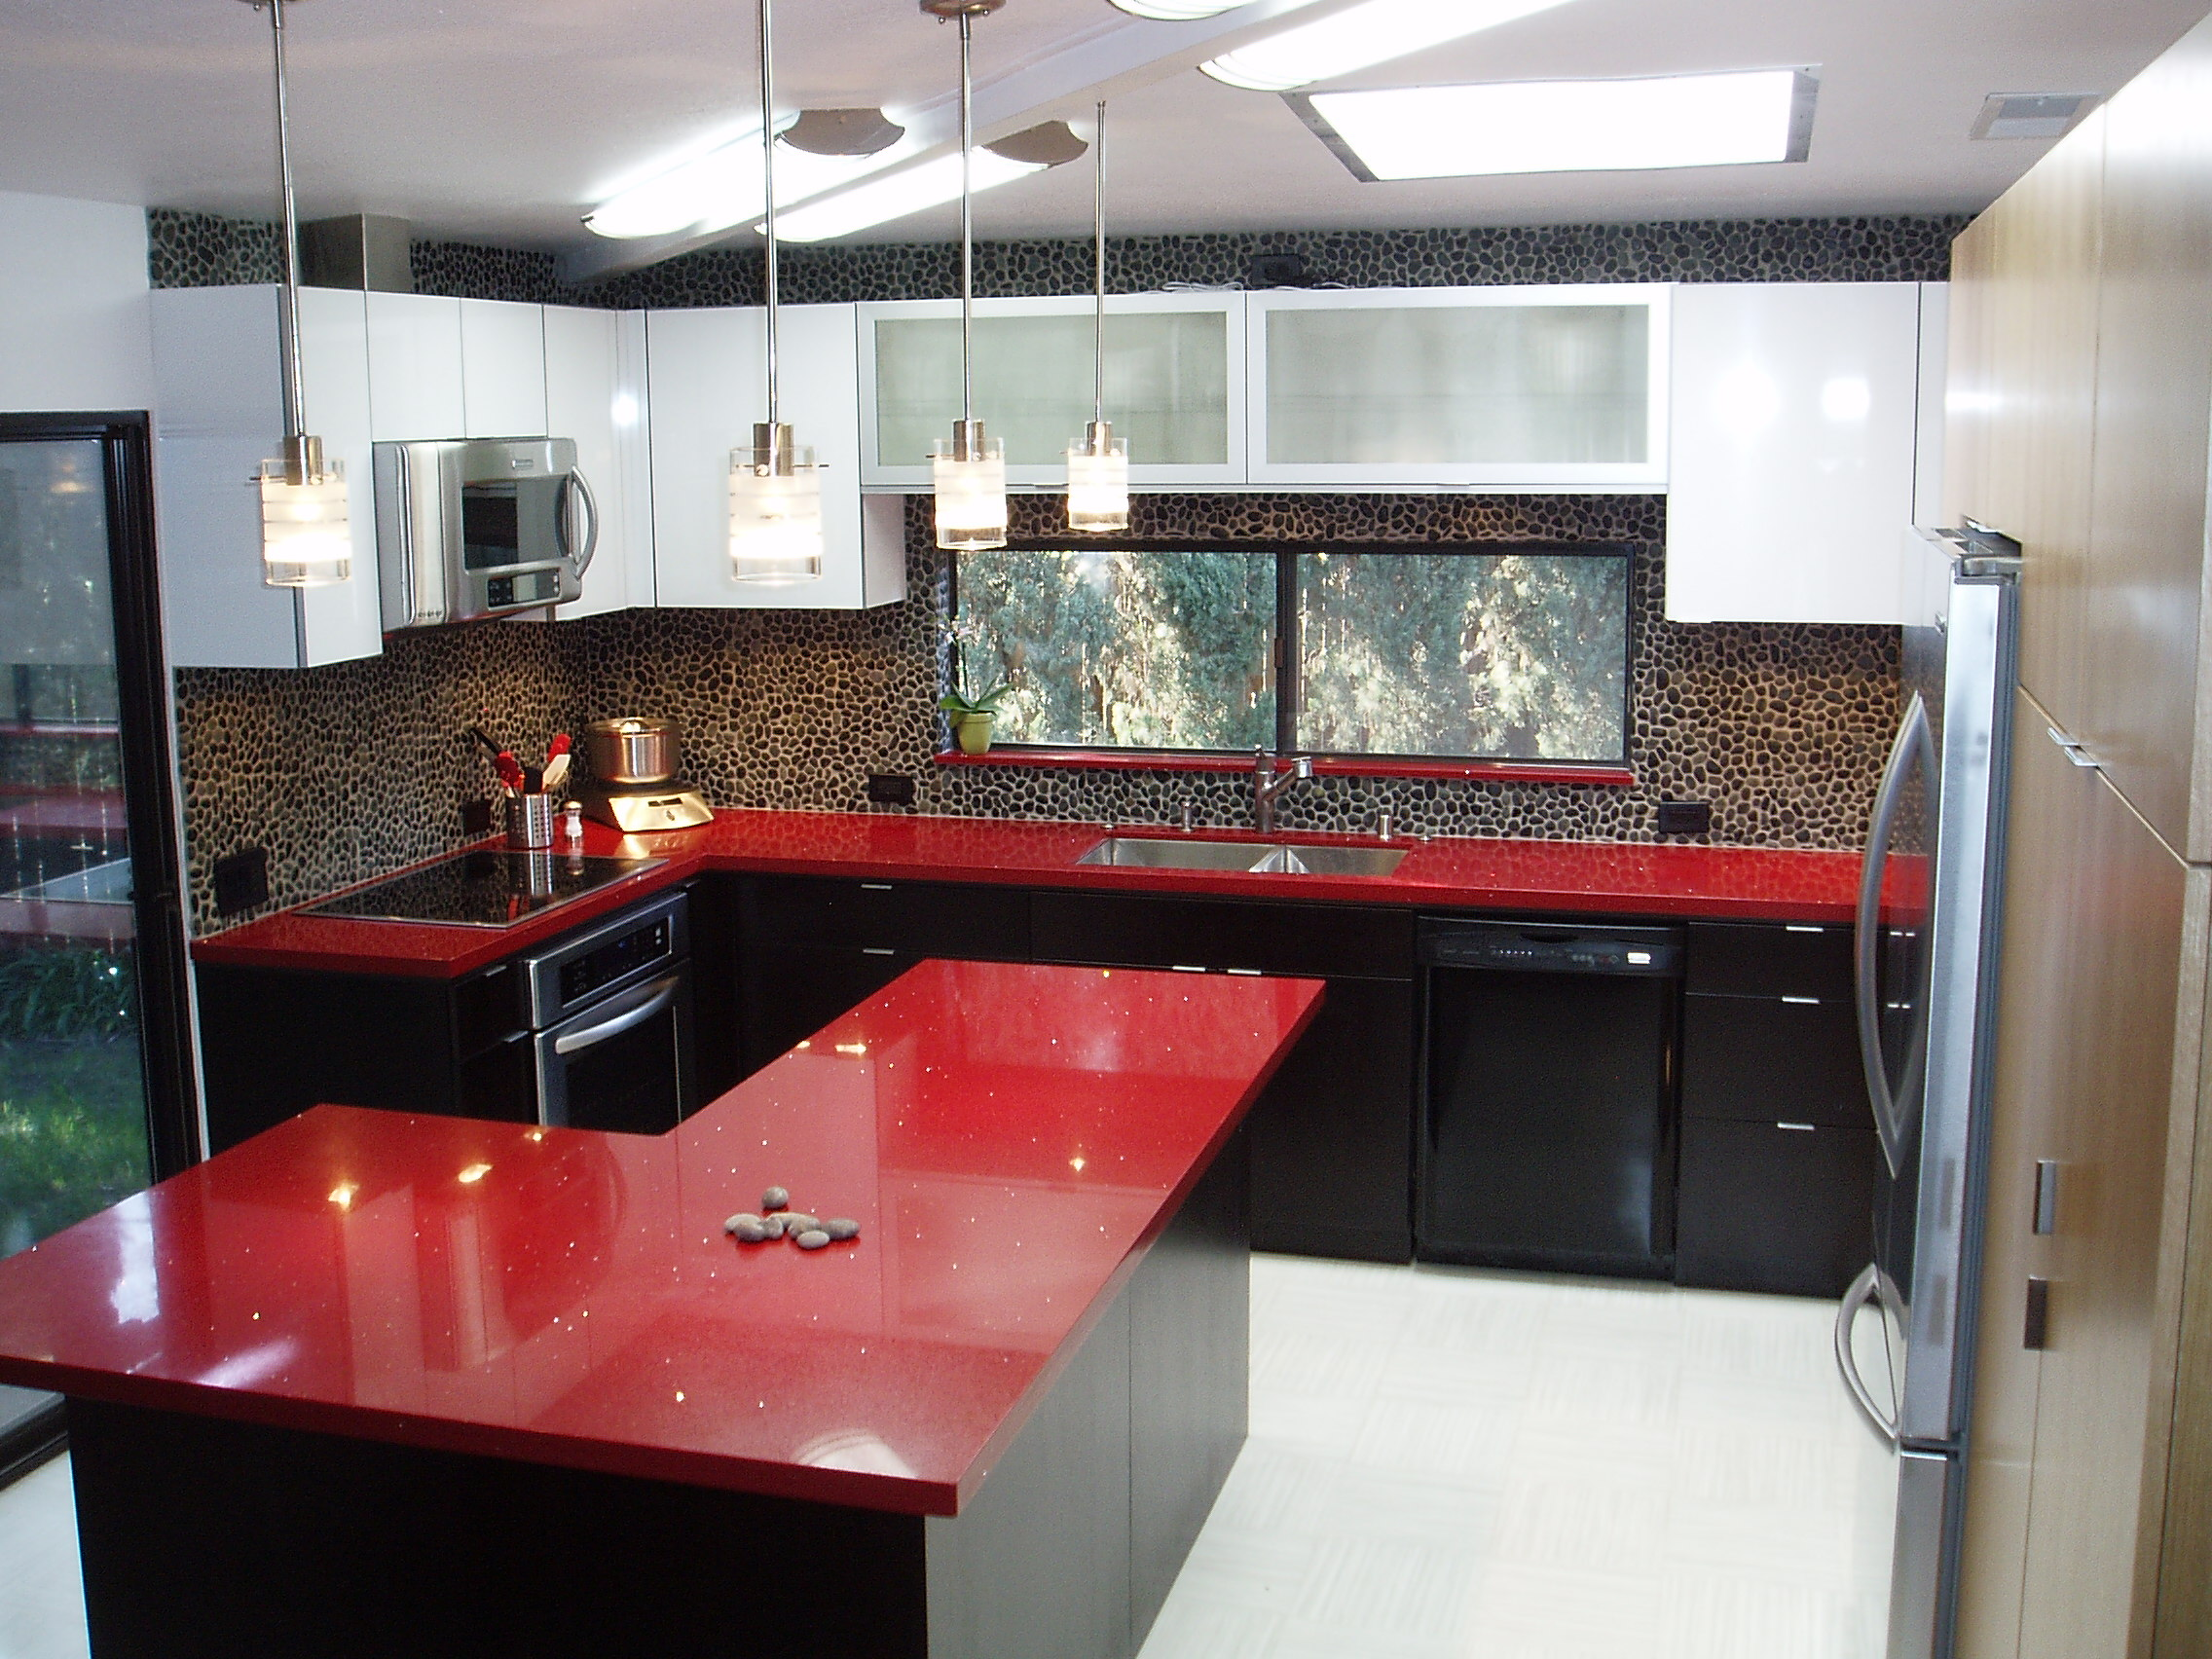 used kitchen countertops pfister faucet repair sacramento design blog what